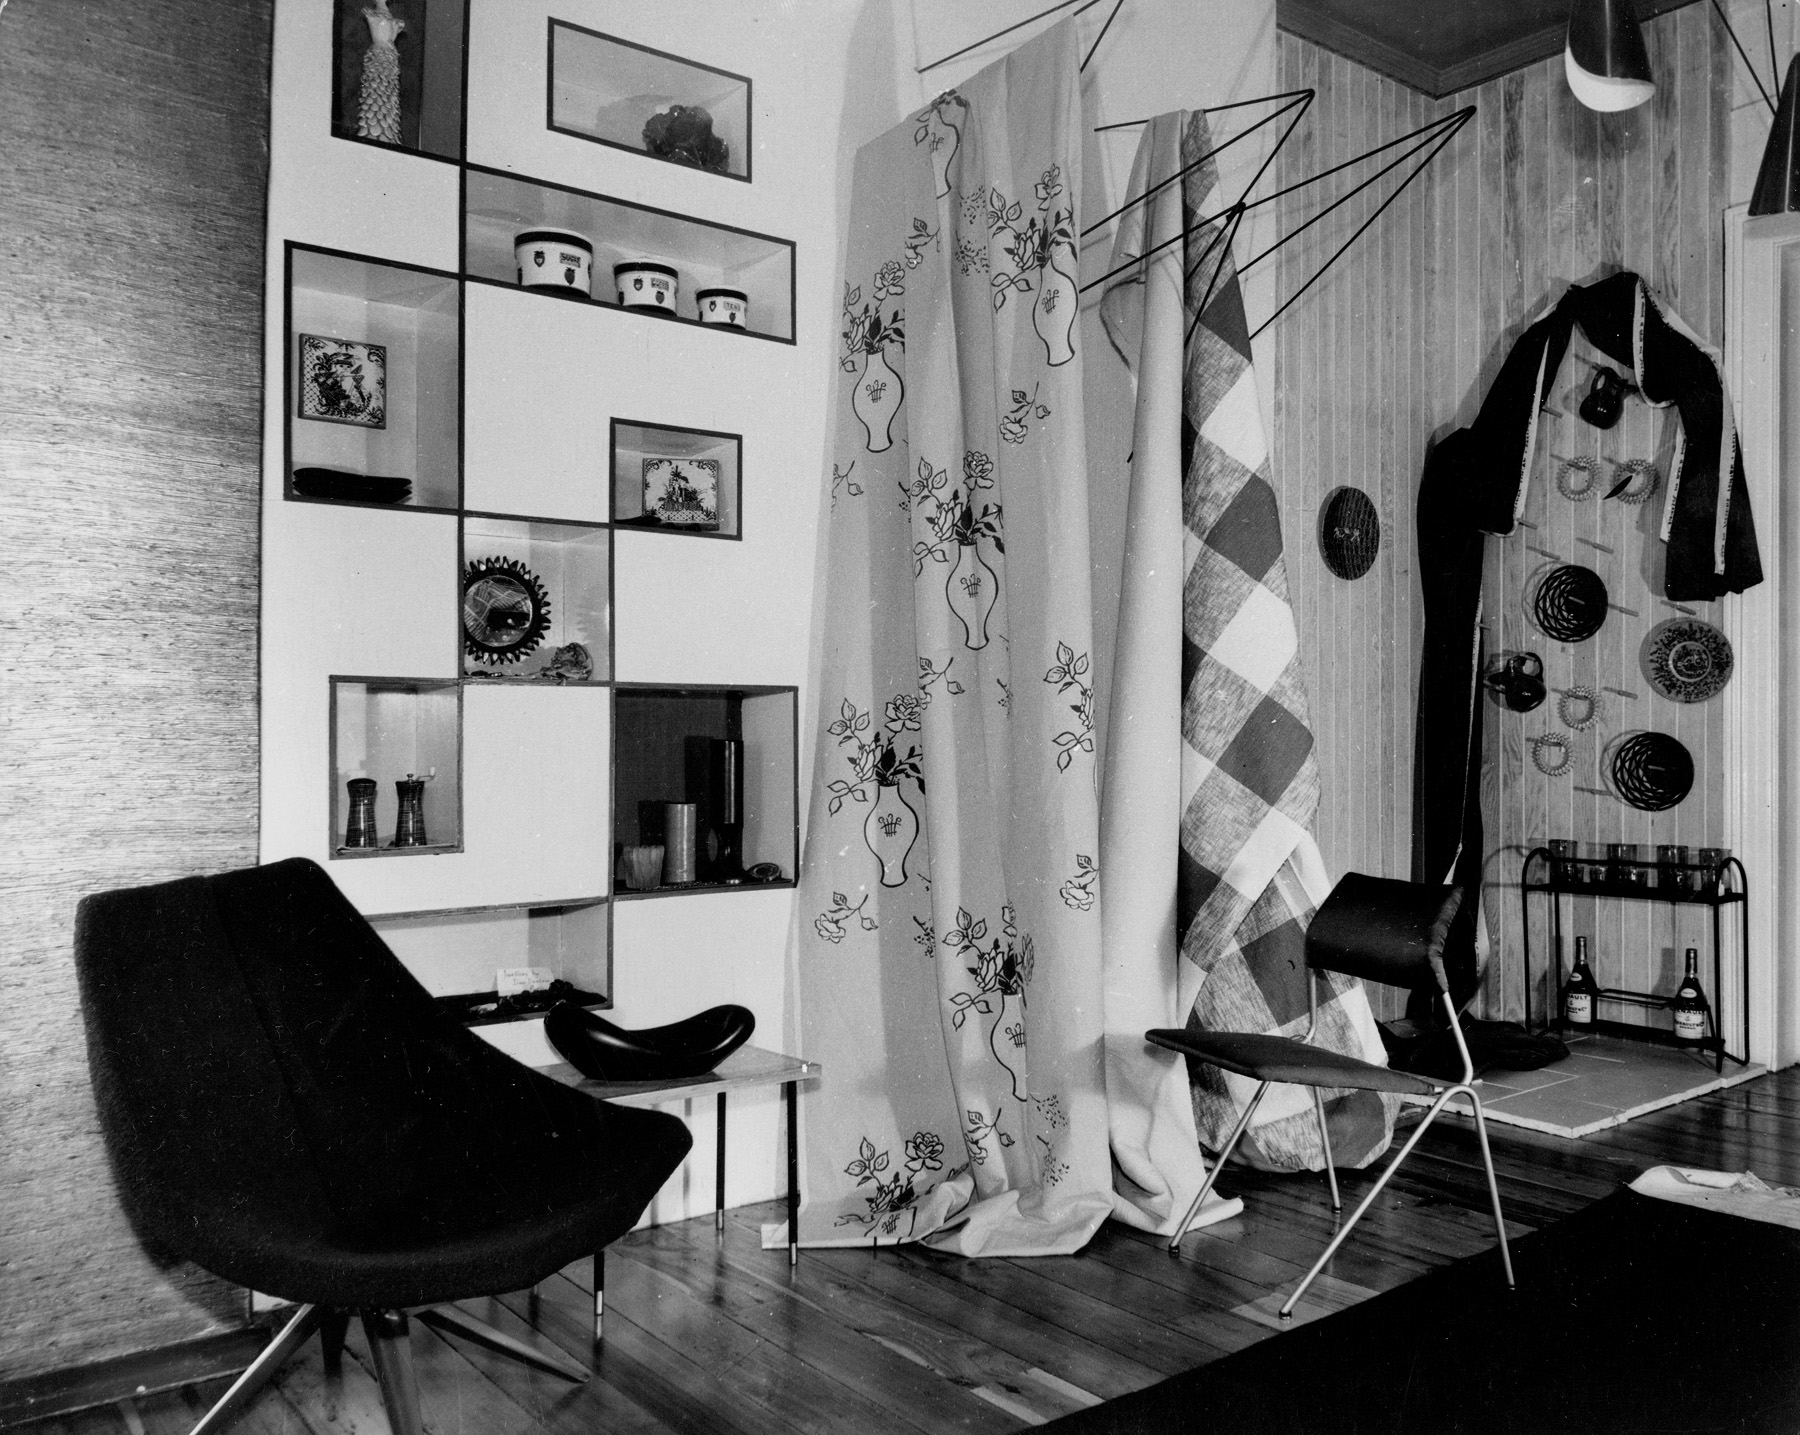 Ceramics and textiles on display in Marion Best Pty Ltd showroom, Queen Street Woollahra, 1956 / photographed by Antonia Blaxland